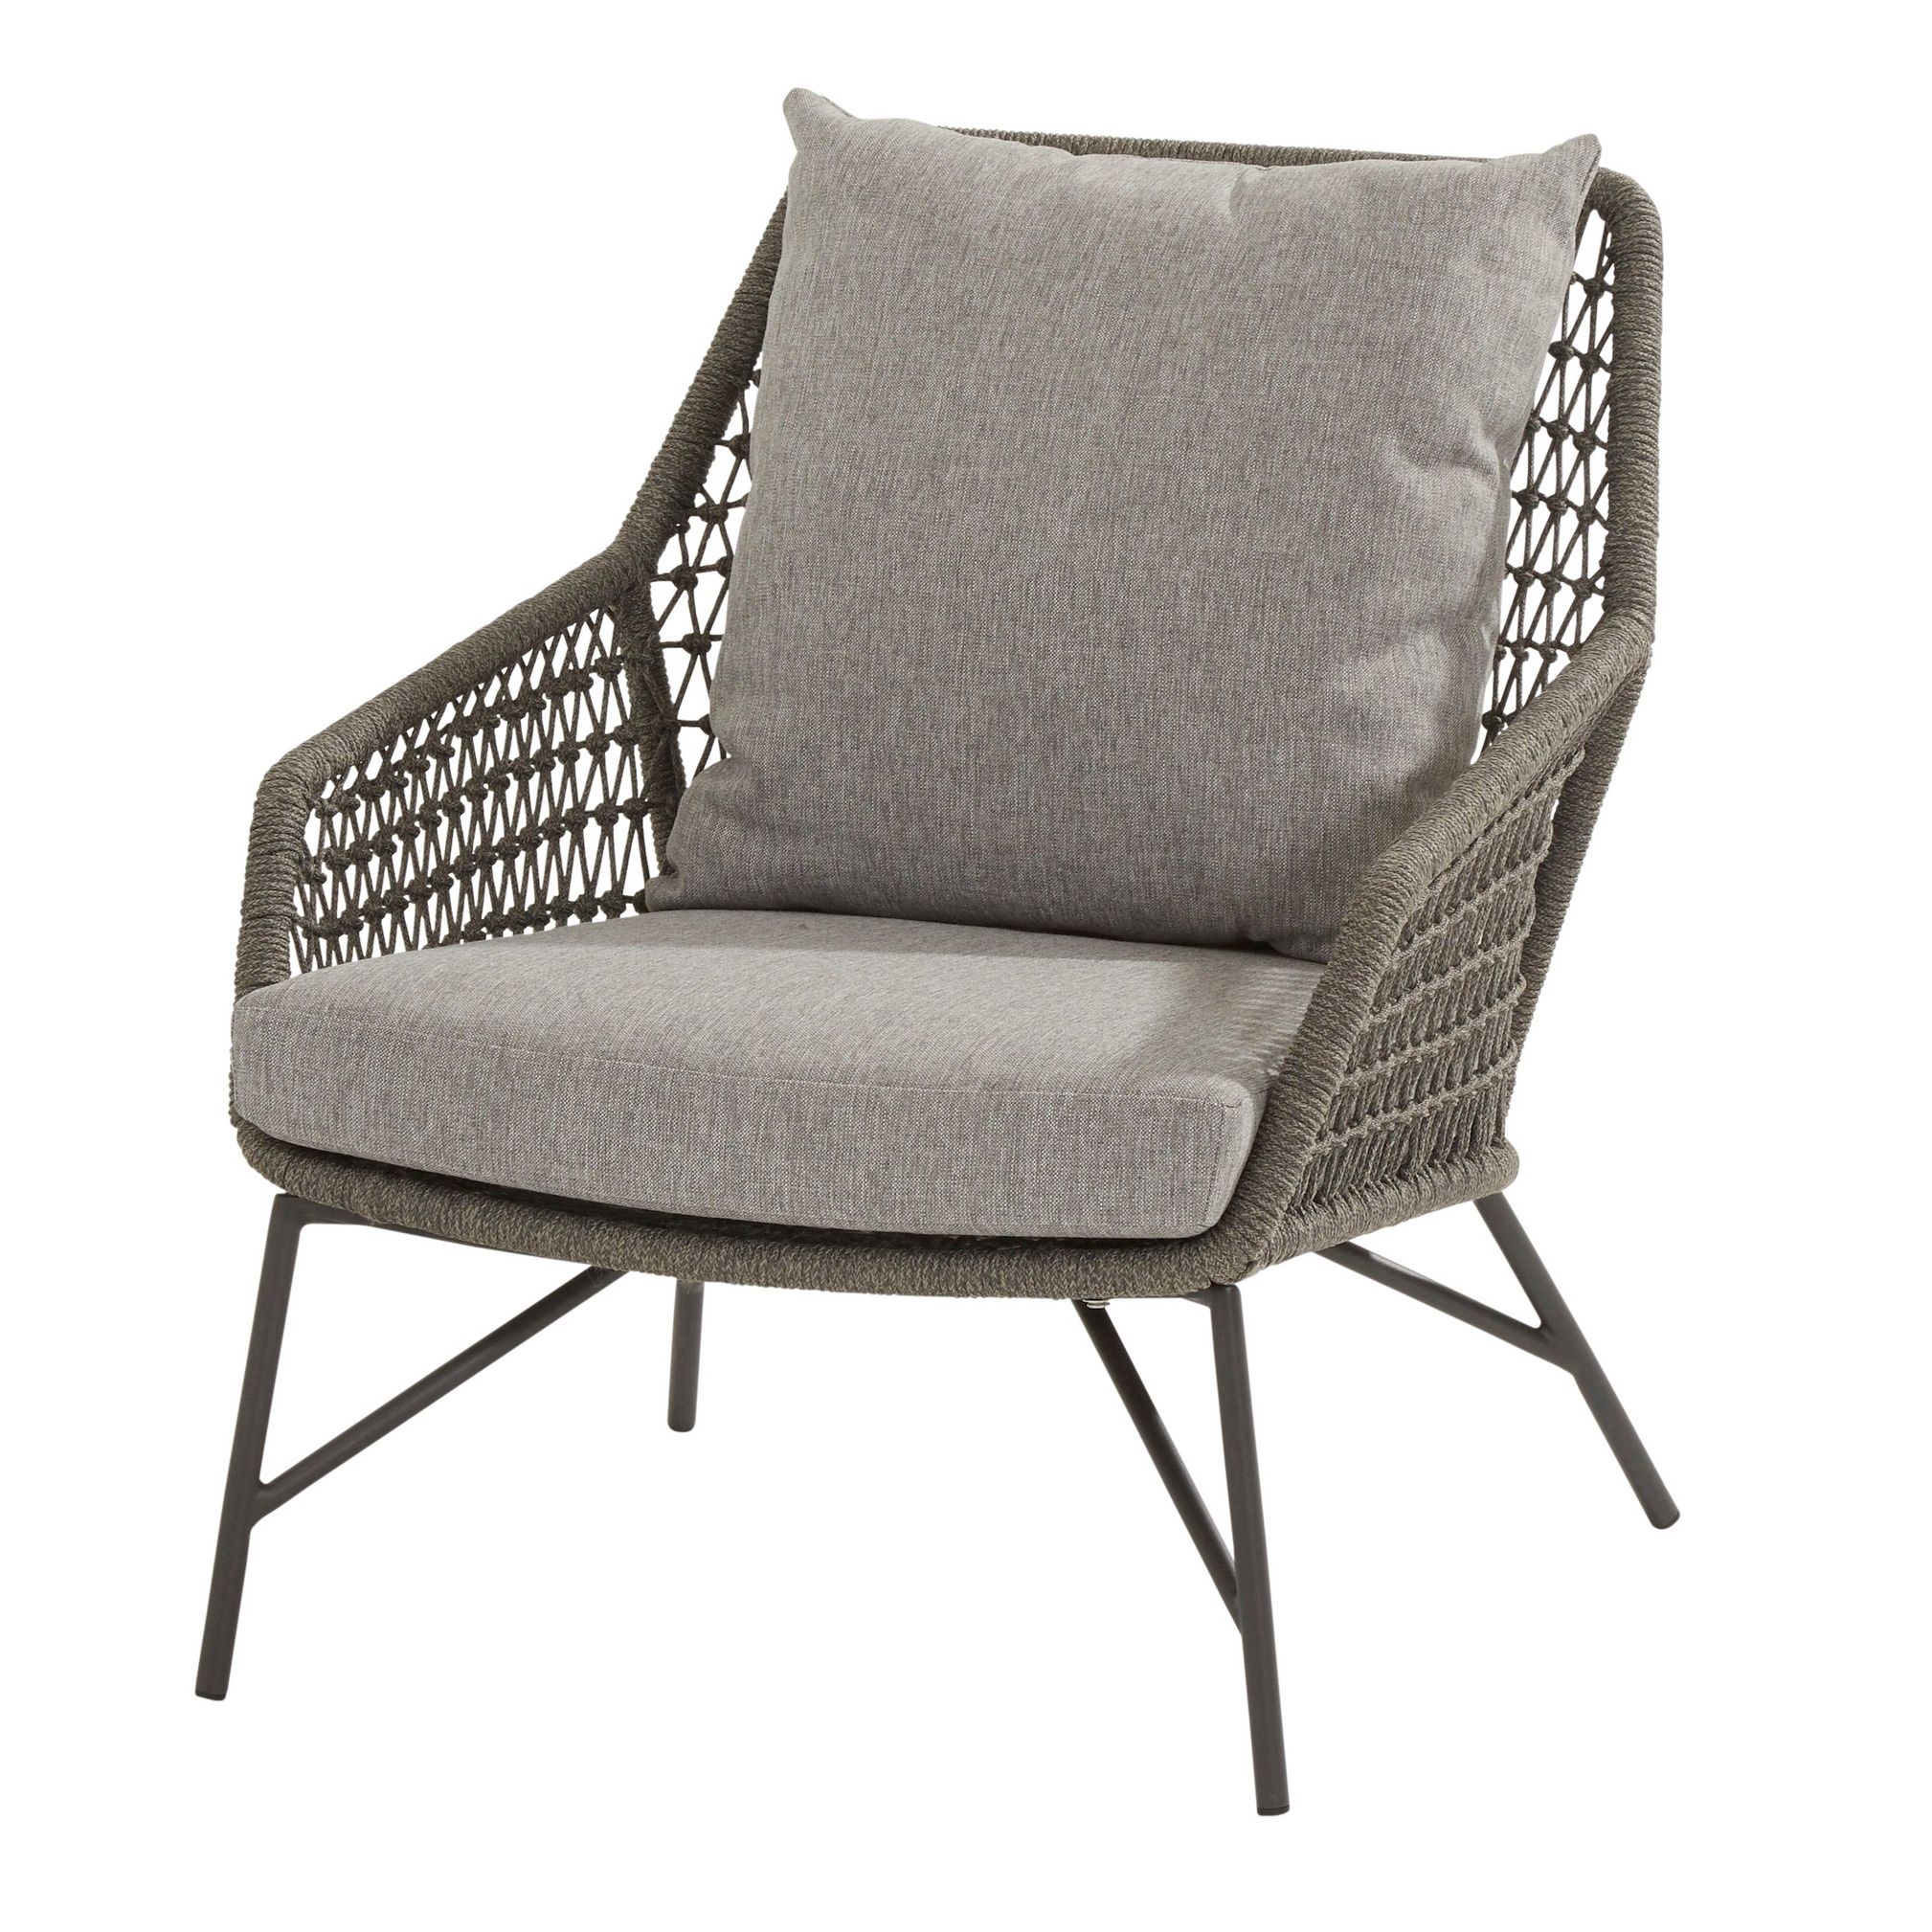 Babylon lounge tuinstoel Mid grey 4-Seasons Outdoor